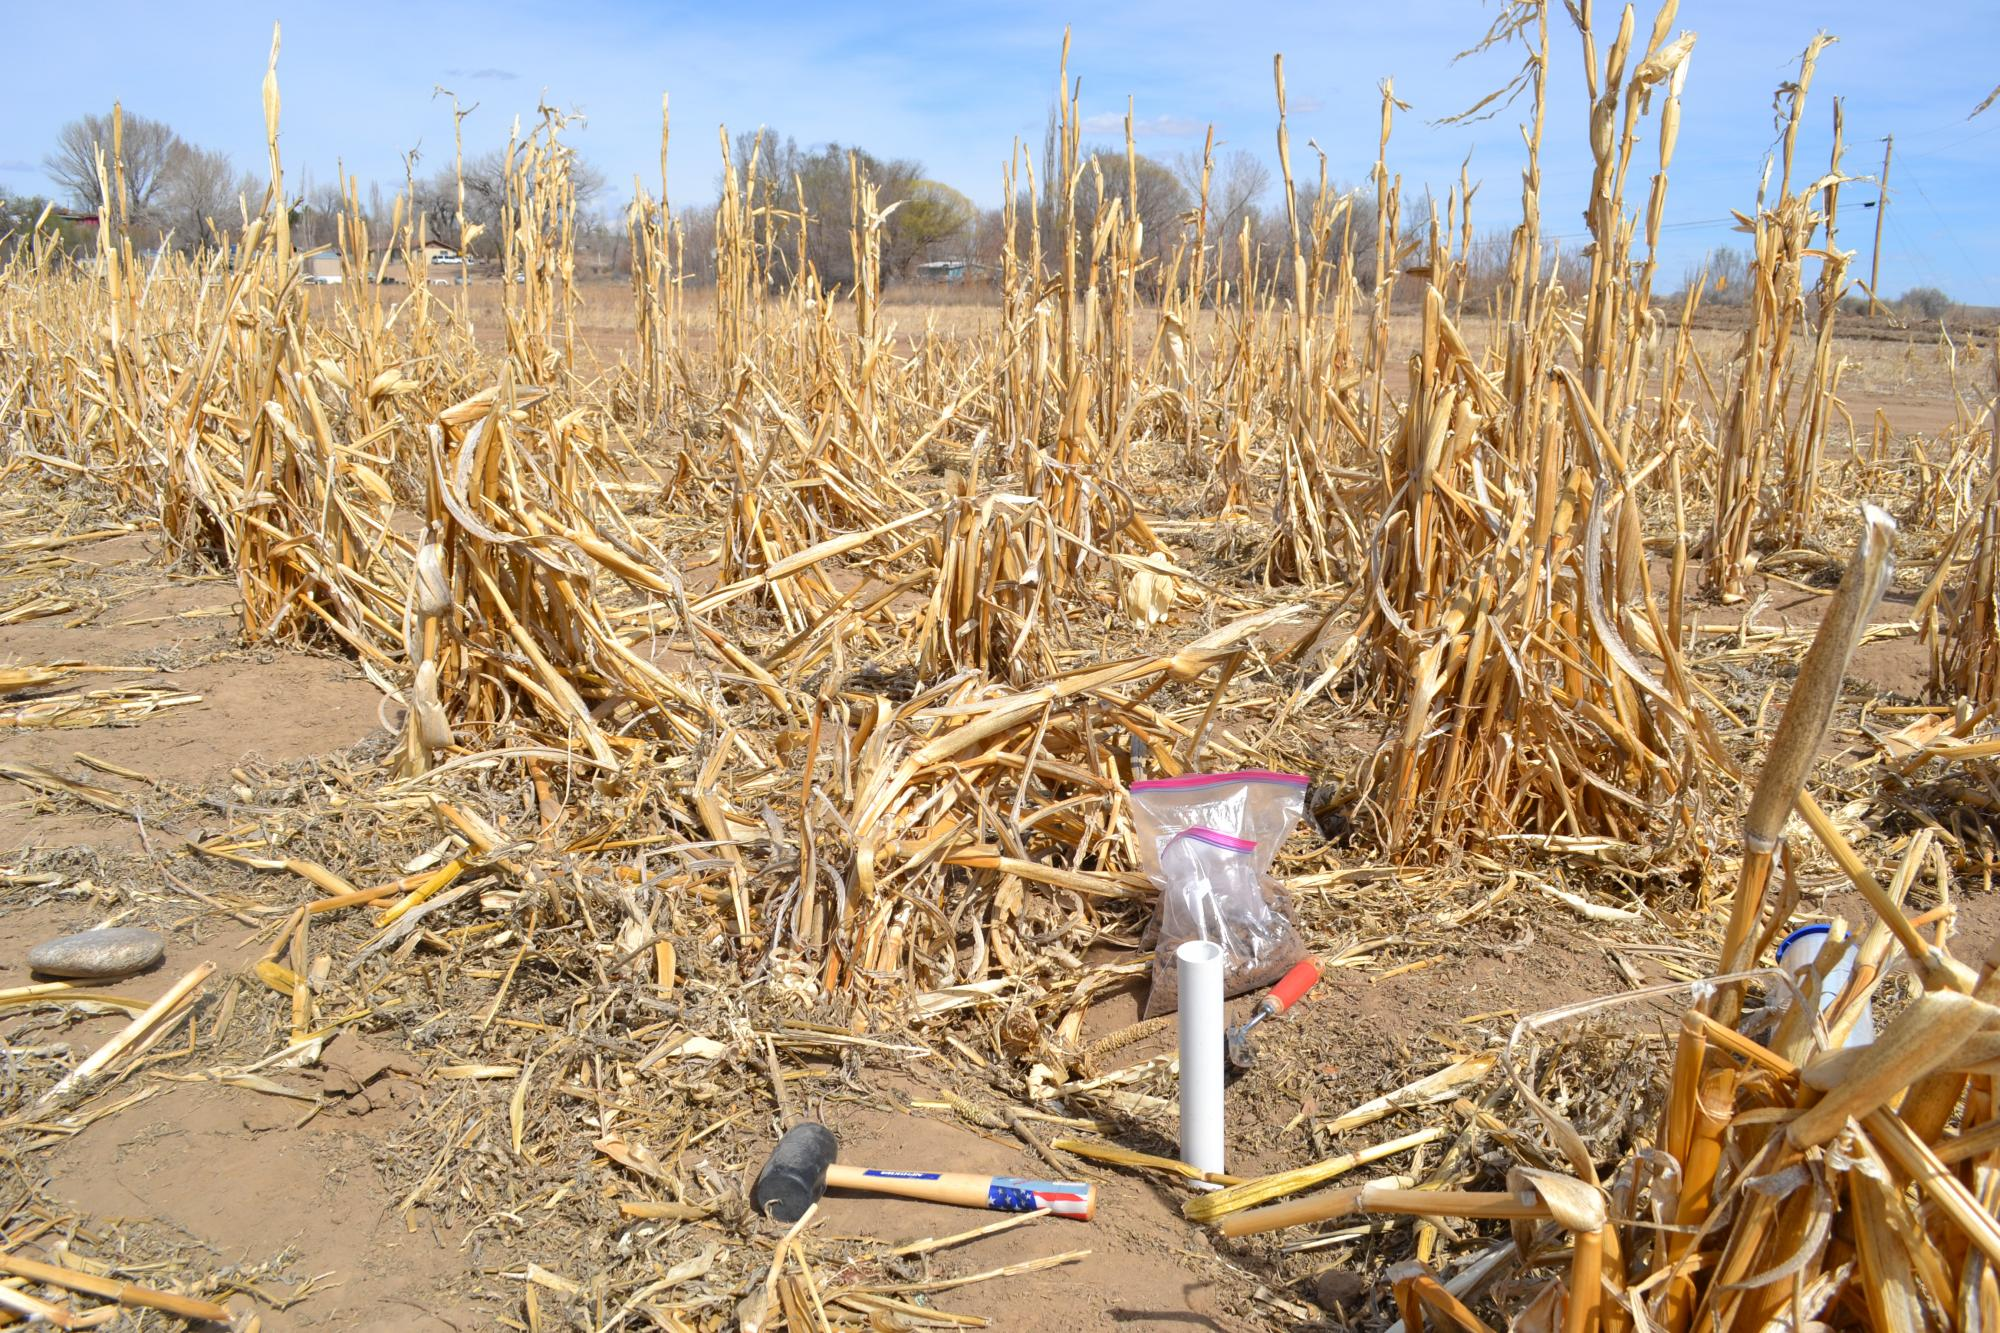 Core samples were taken from a cornfield as a result of the Gold King Mine Spill.